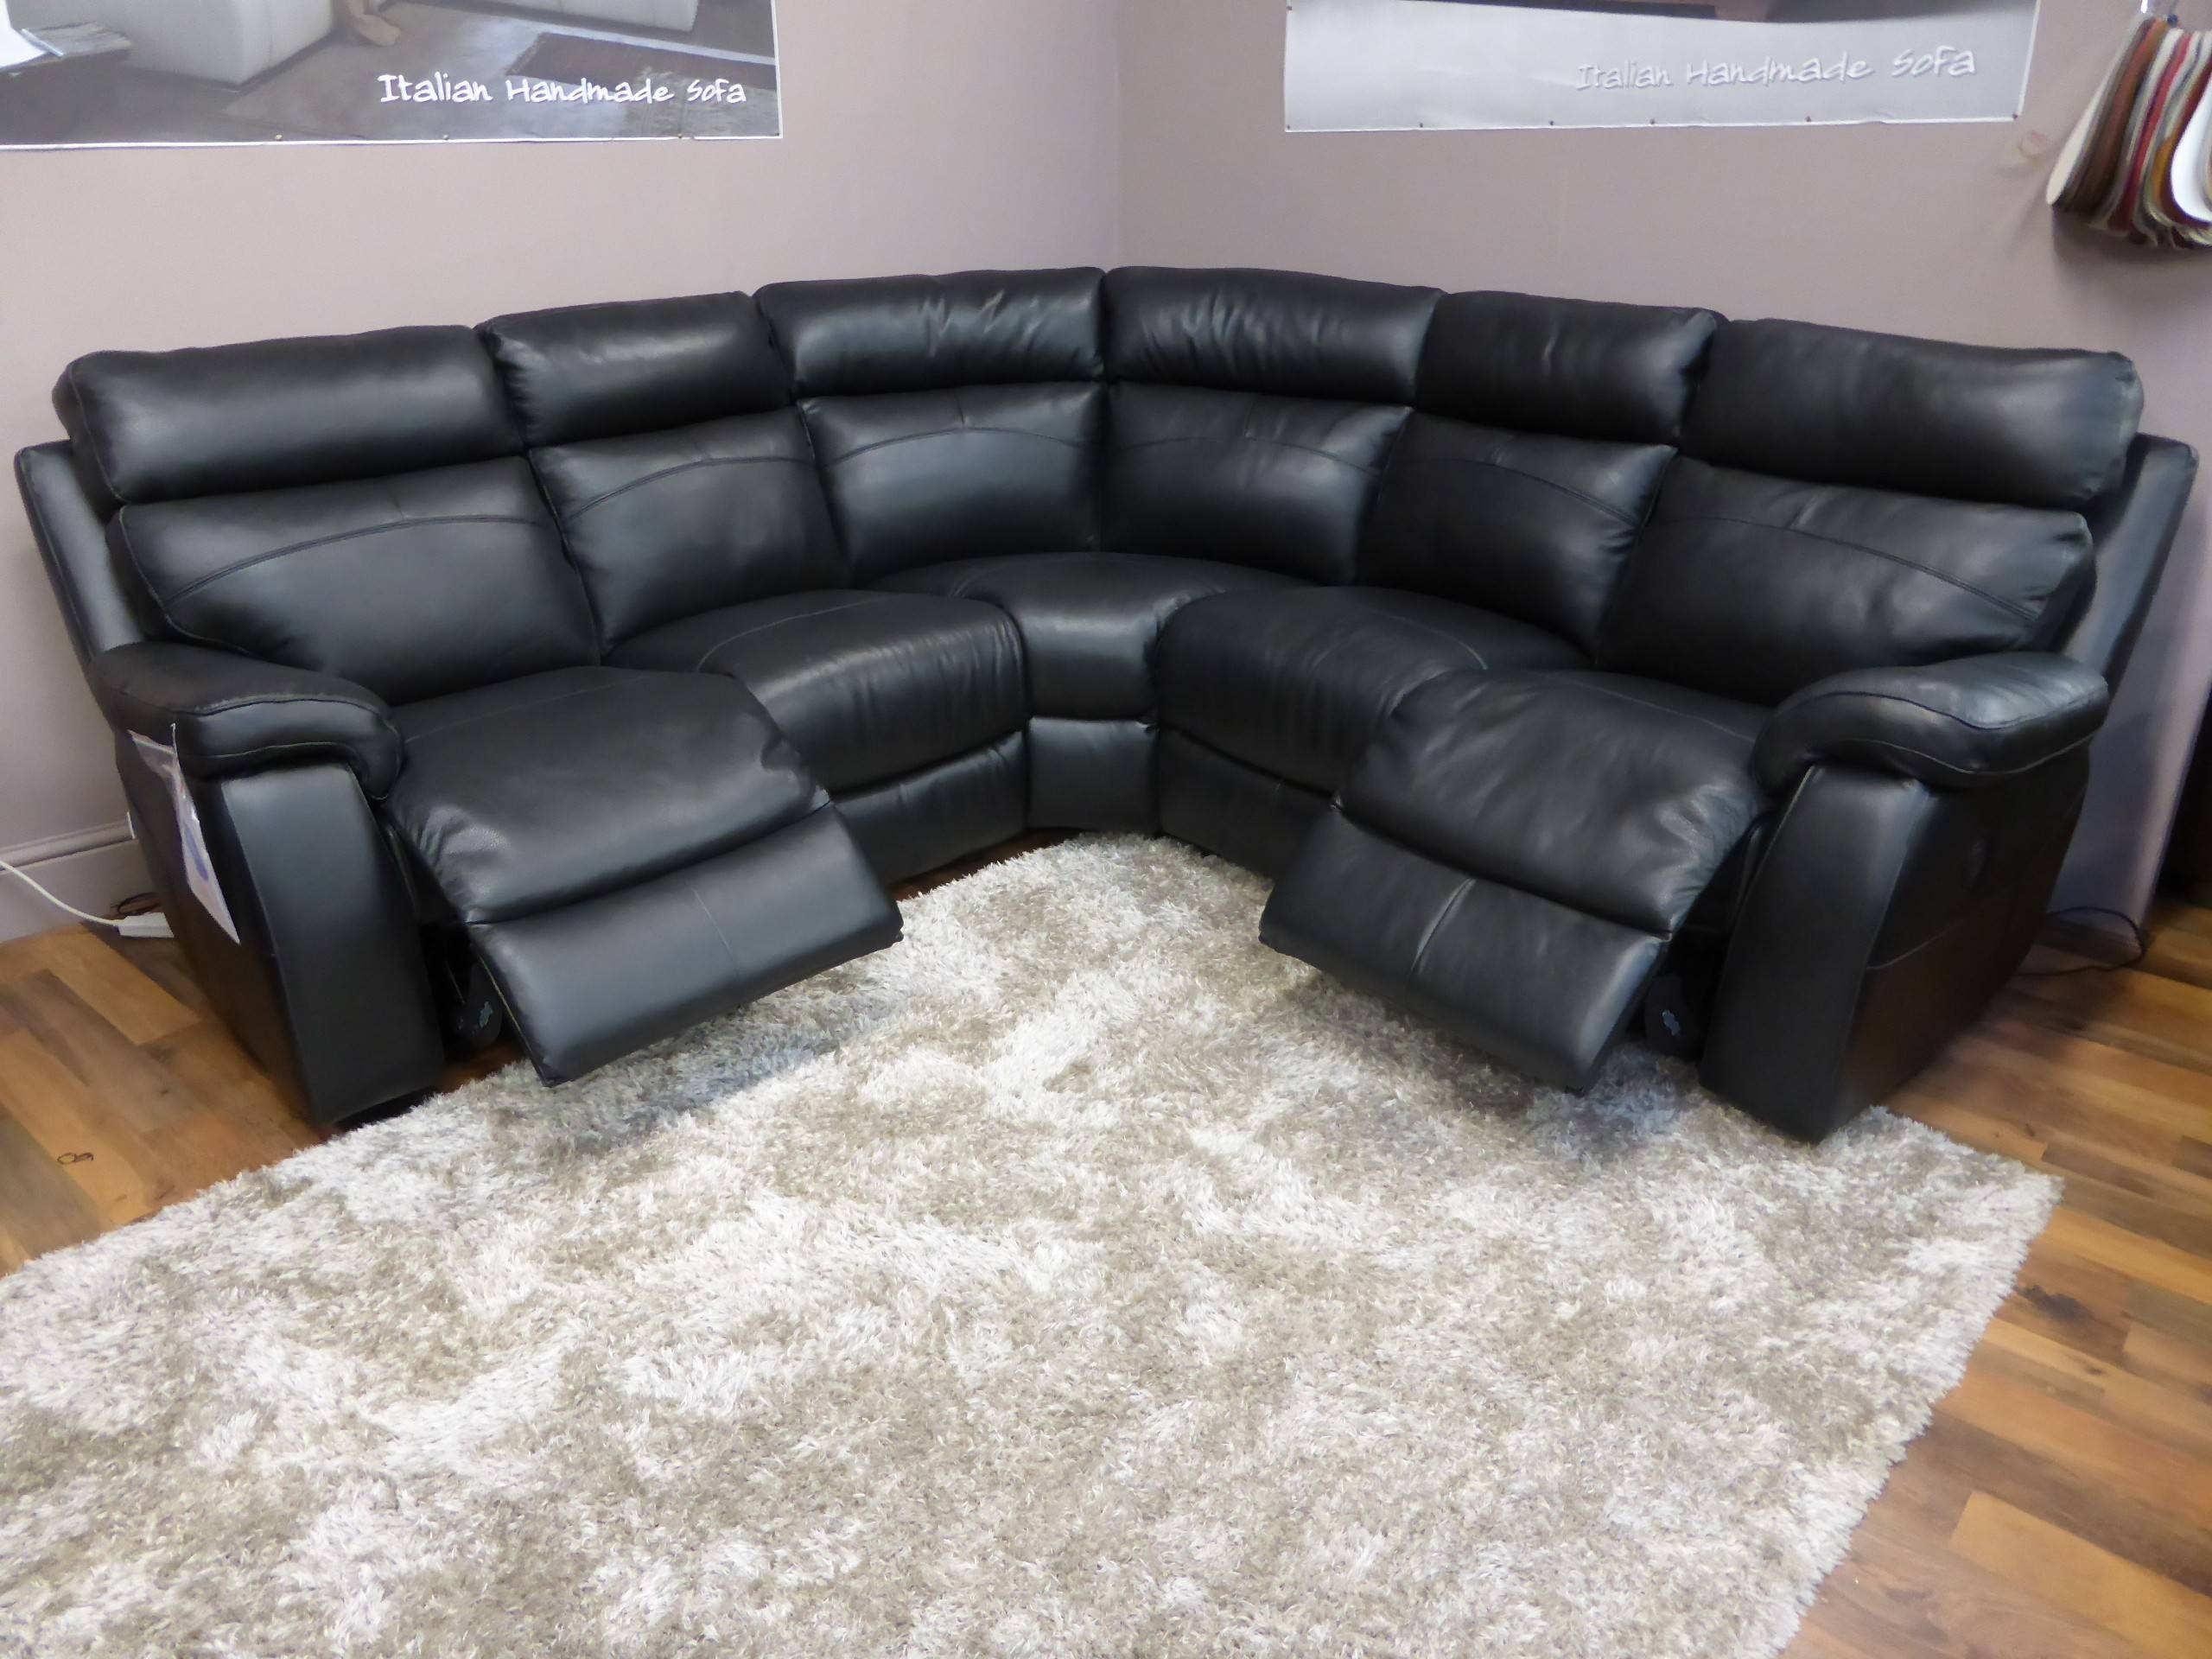 Corner Sofas With Recliners | Tehranmix Decoration regarding Large Black Leather Corner Sofas (Image 7 of 30)